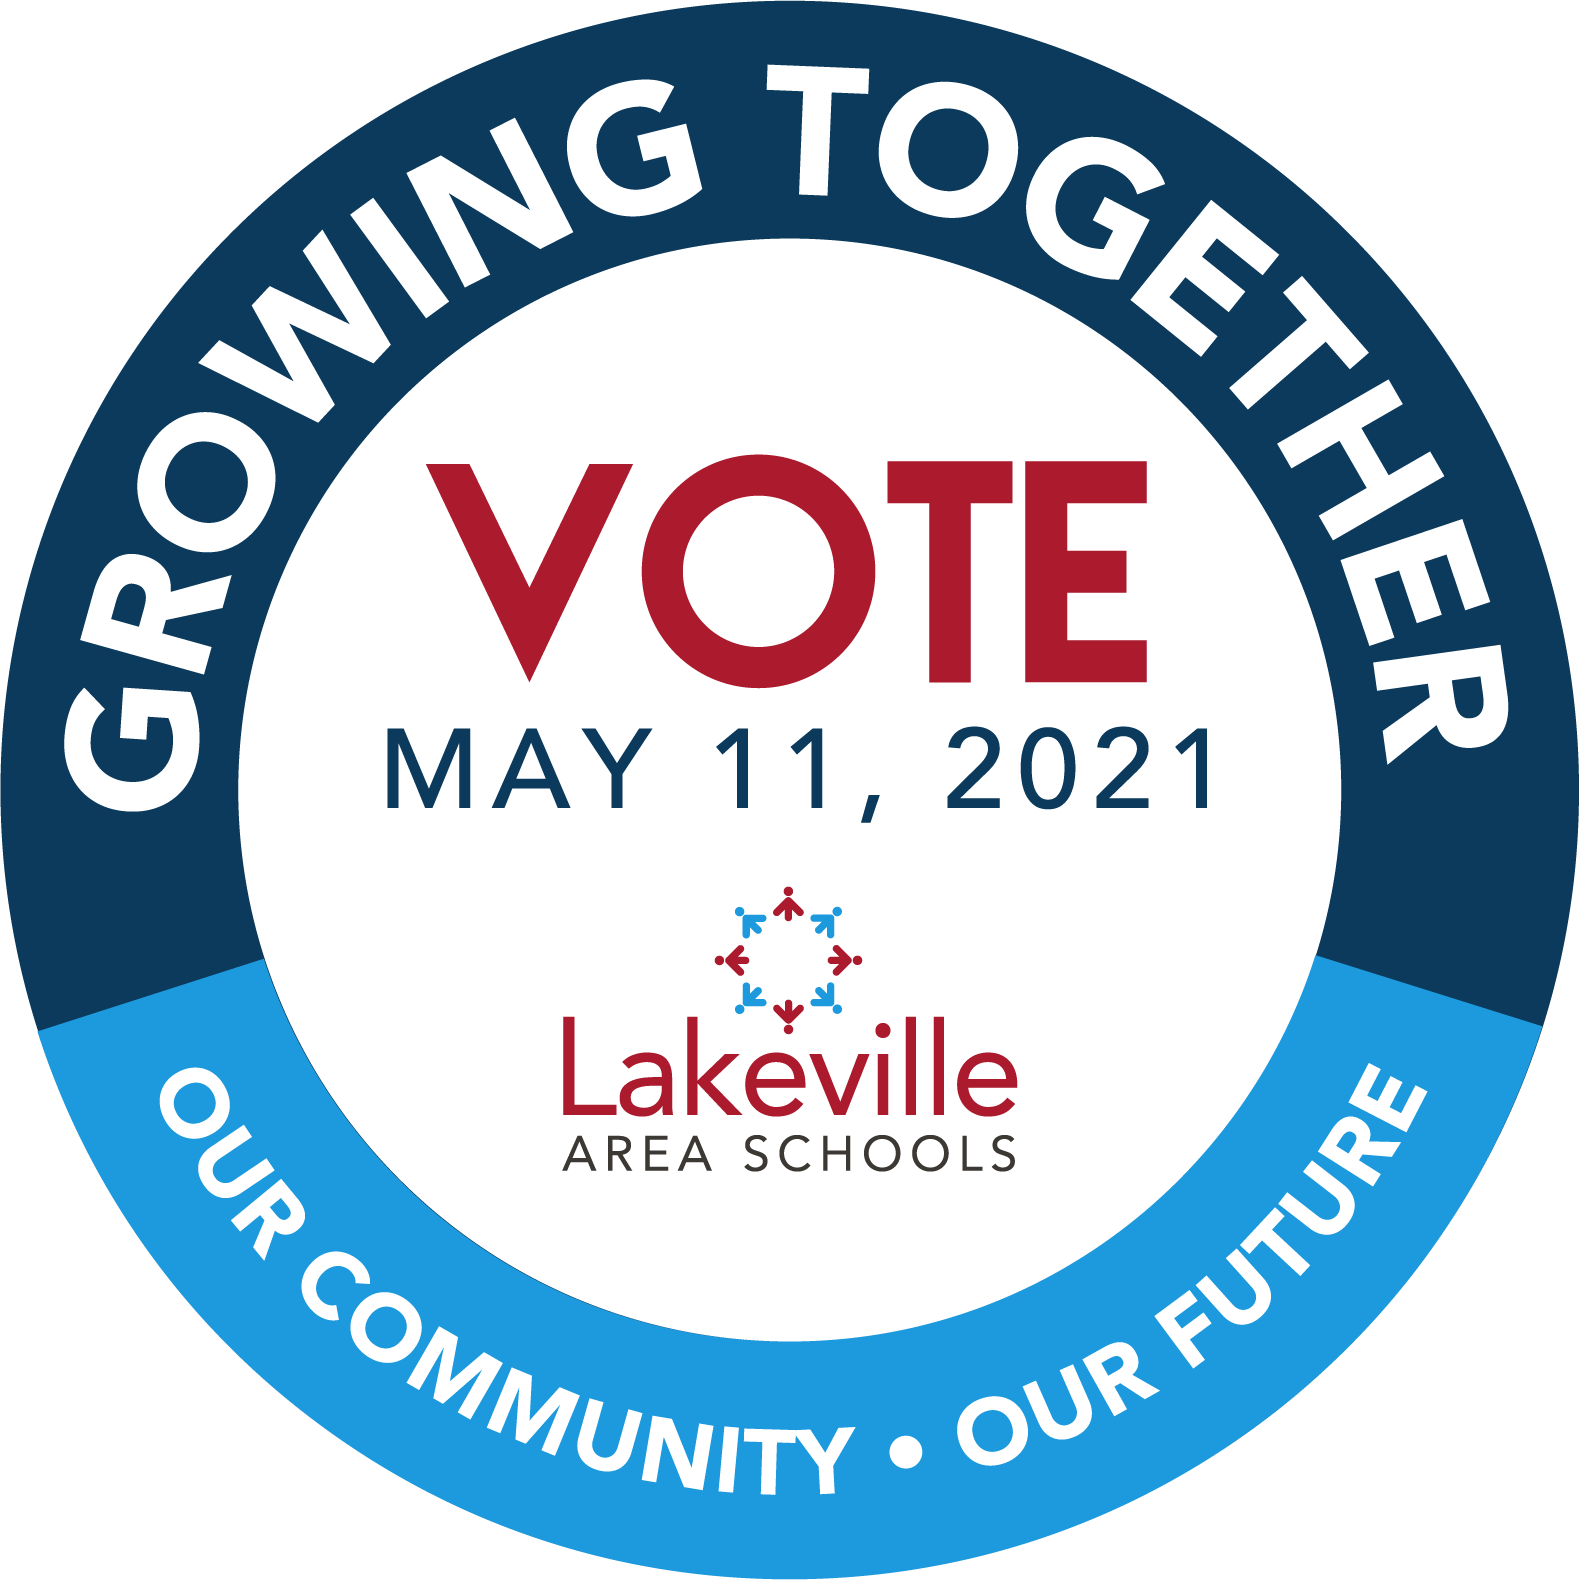 Referendum logo. Growing together. Vote May 11, 2021